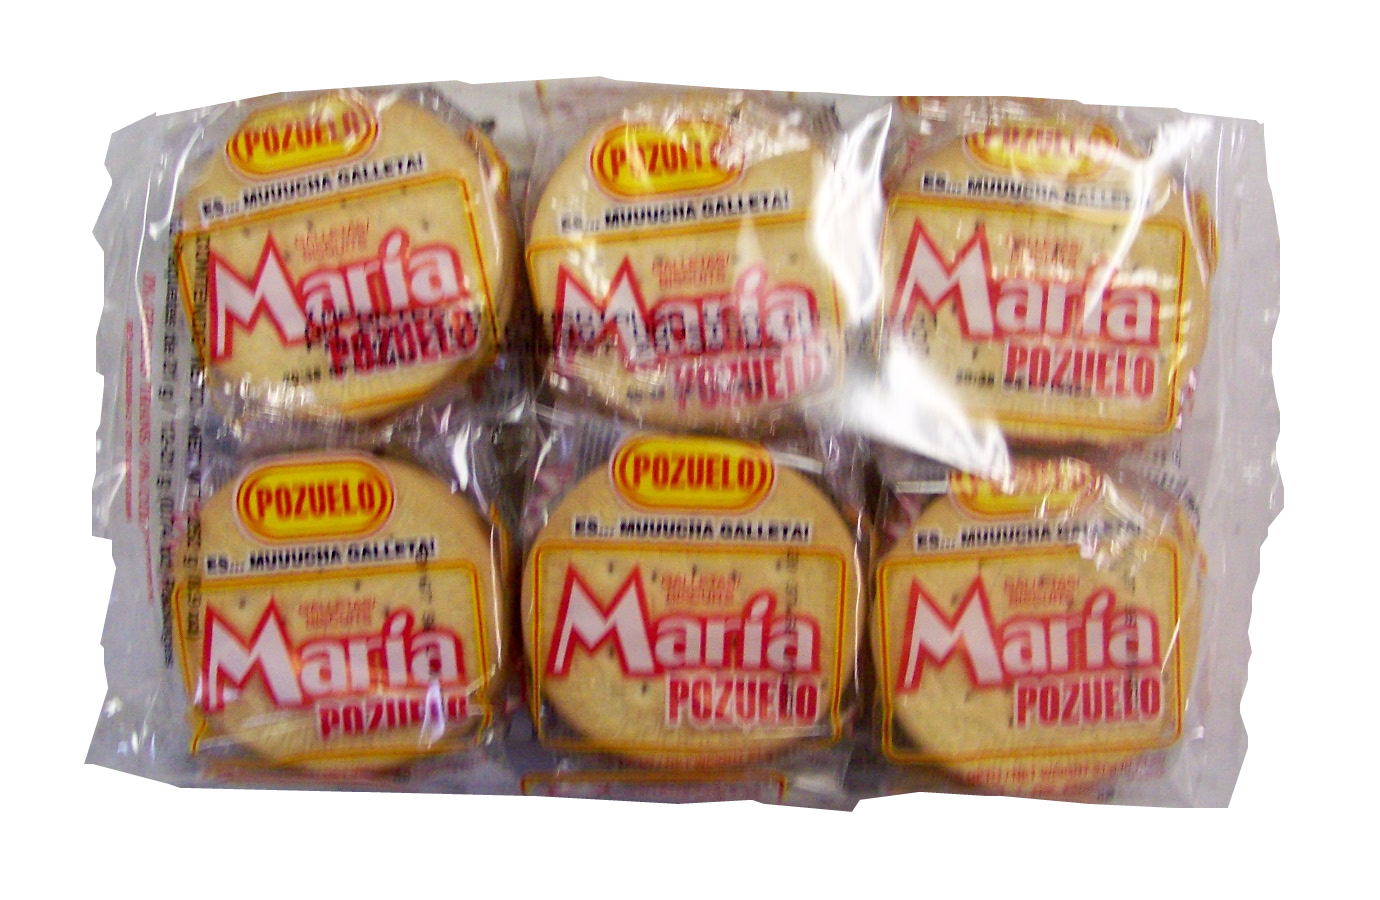 Galleta Maria Pozuelo 5.85oz